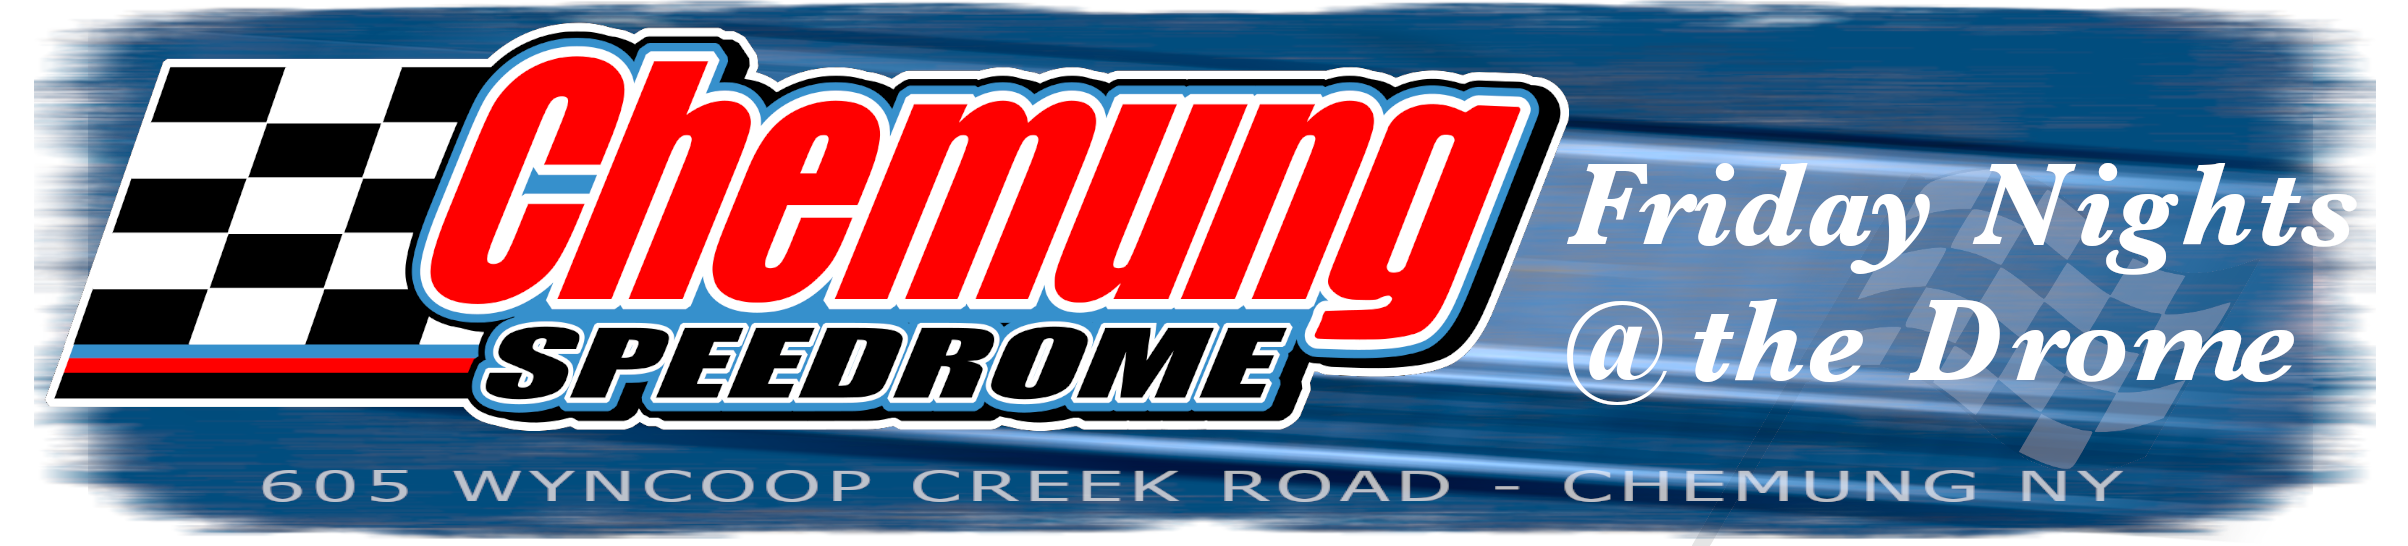 Chemung Speedrome - Friday Nights at the Drome